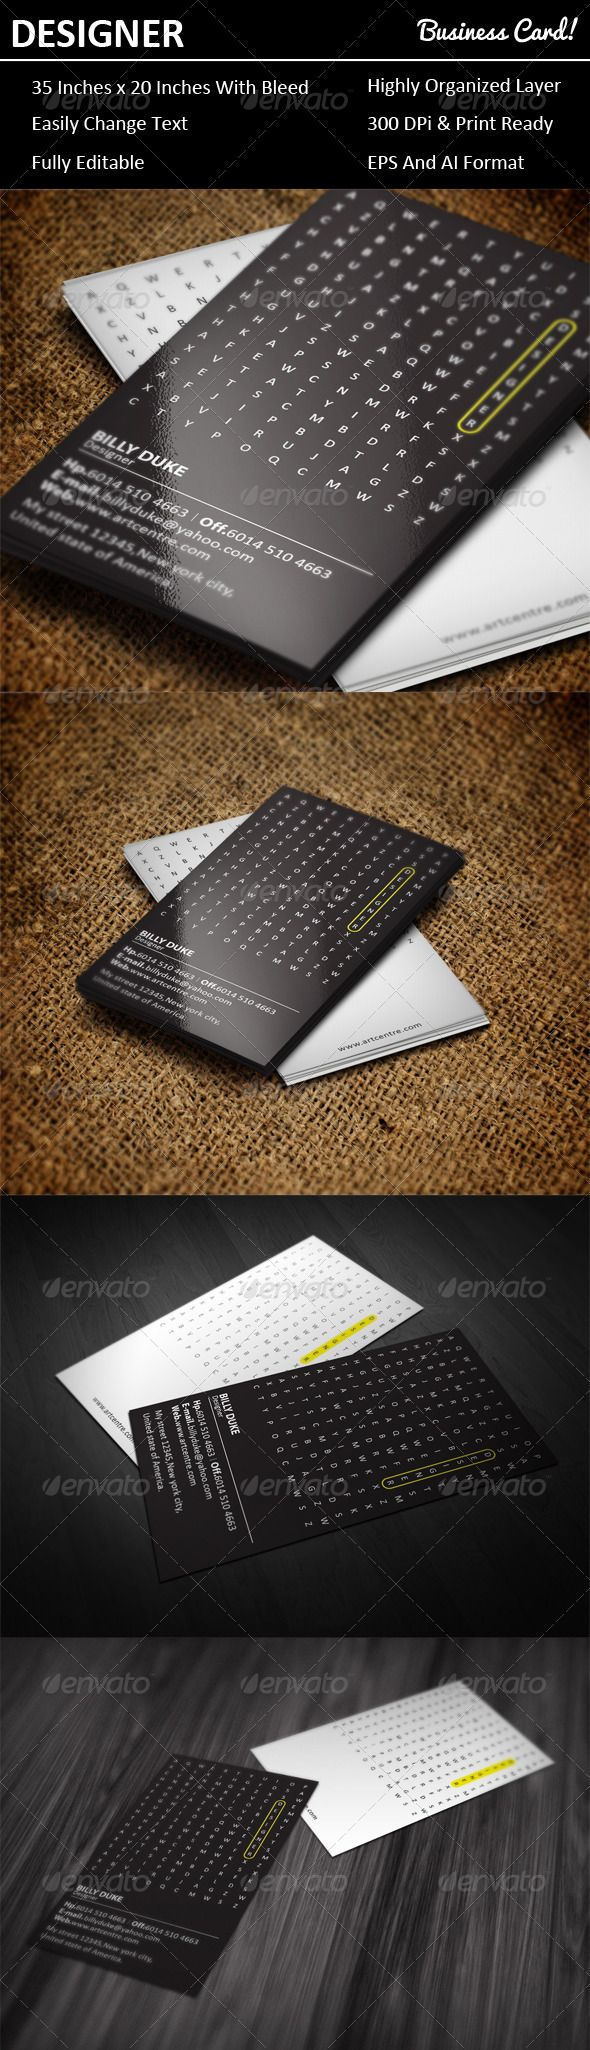 106 best business cards images on pinterest corporate identity 106 best business cards images on pinterest corporate identity paper and creative magicingreecefo Gallery